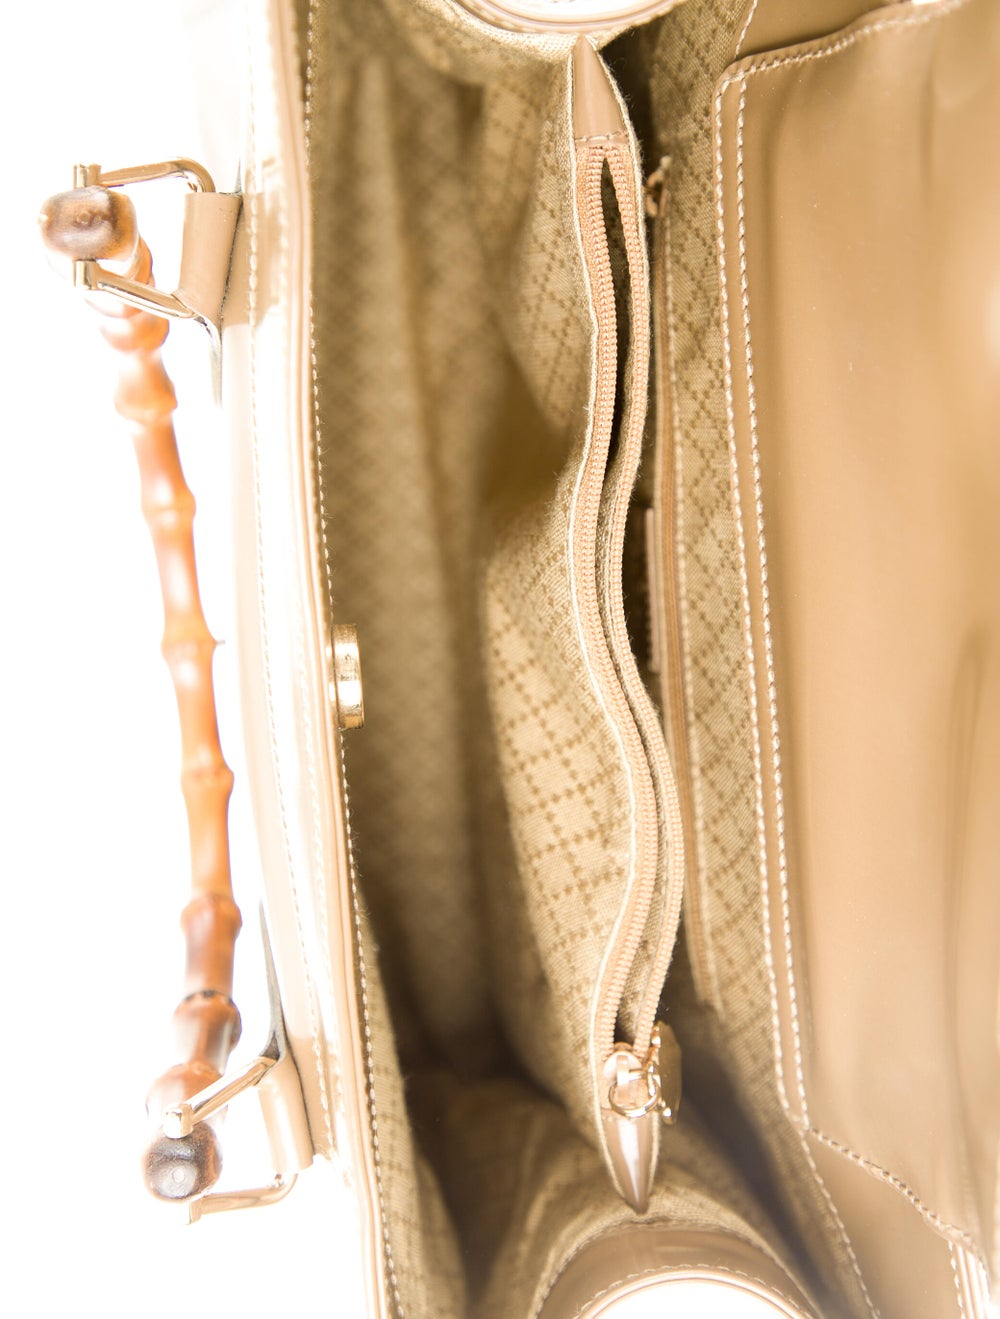 Gucci Vintage Leather Bamboo Diana Tote Brown - image 5